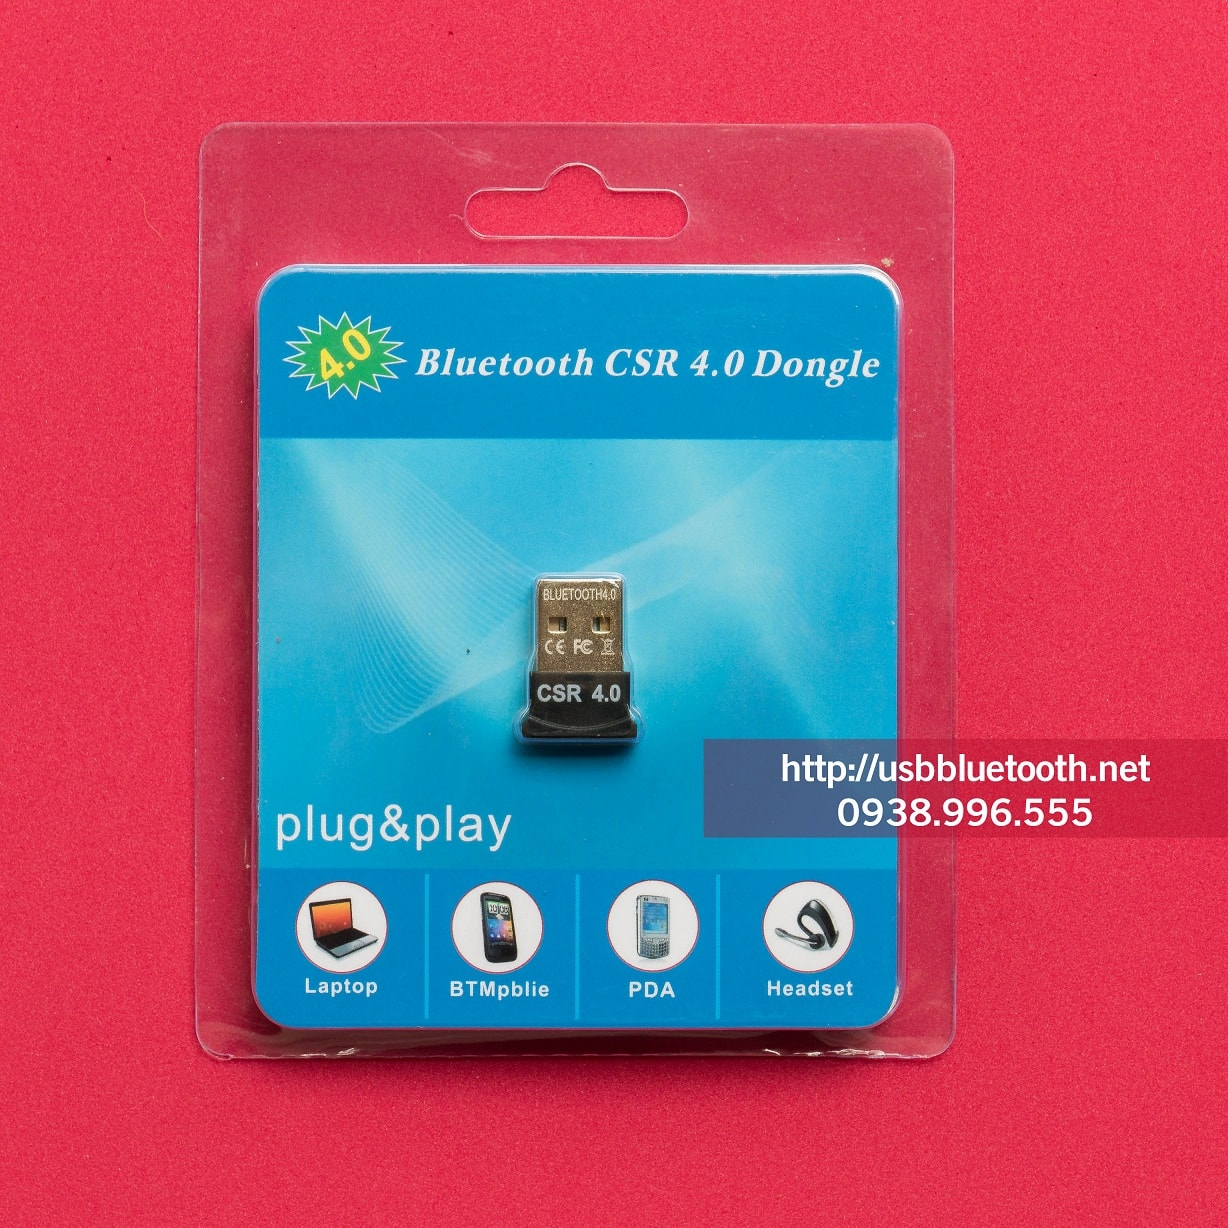 usb_bluetooth_pc (2)_thumbnail